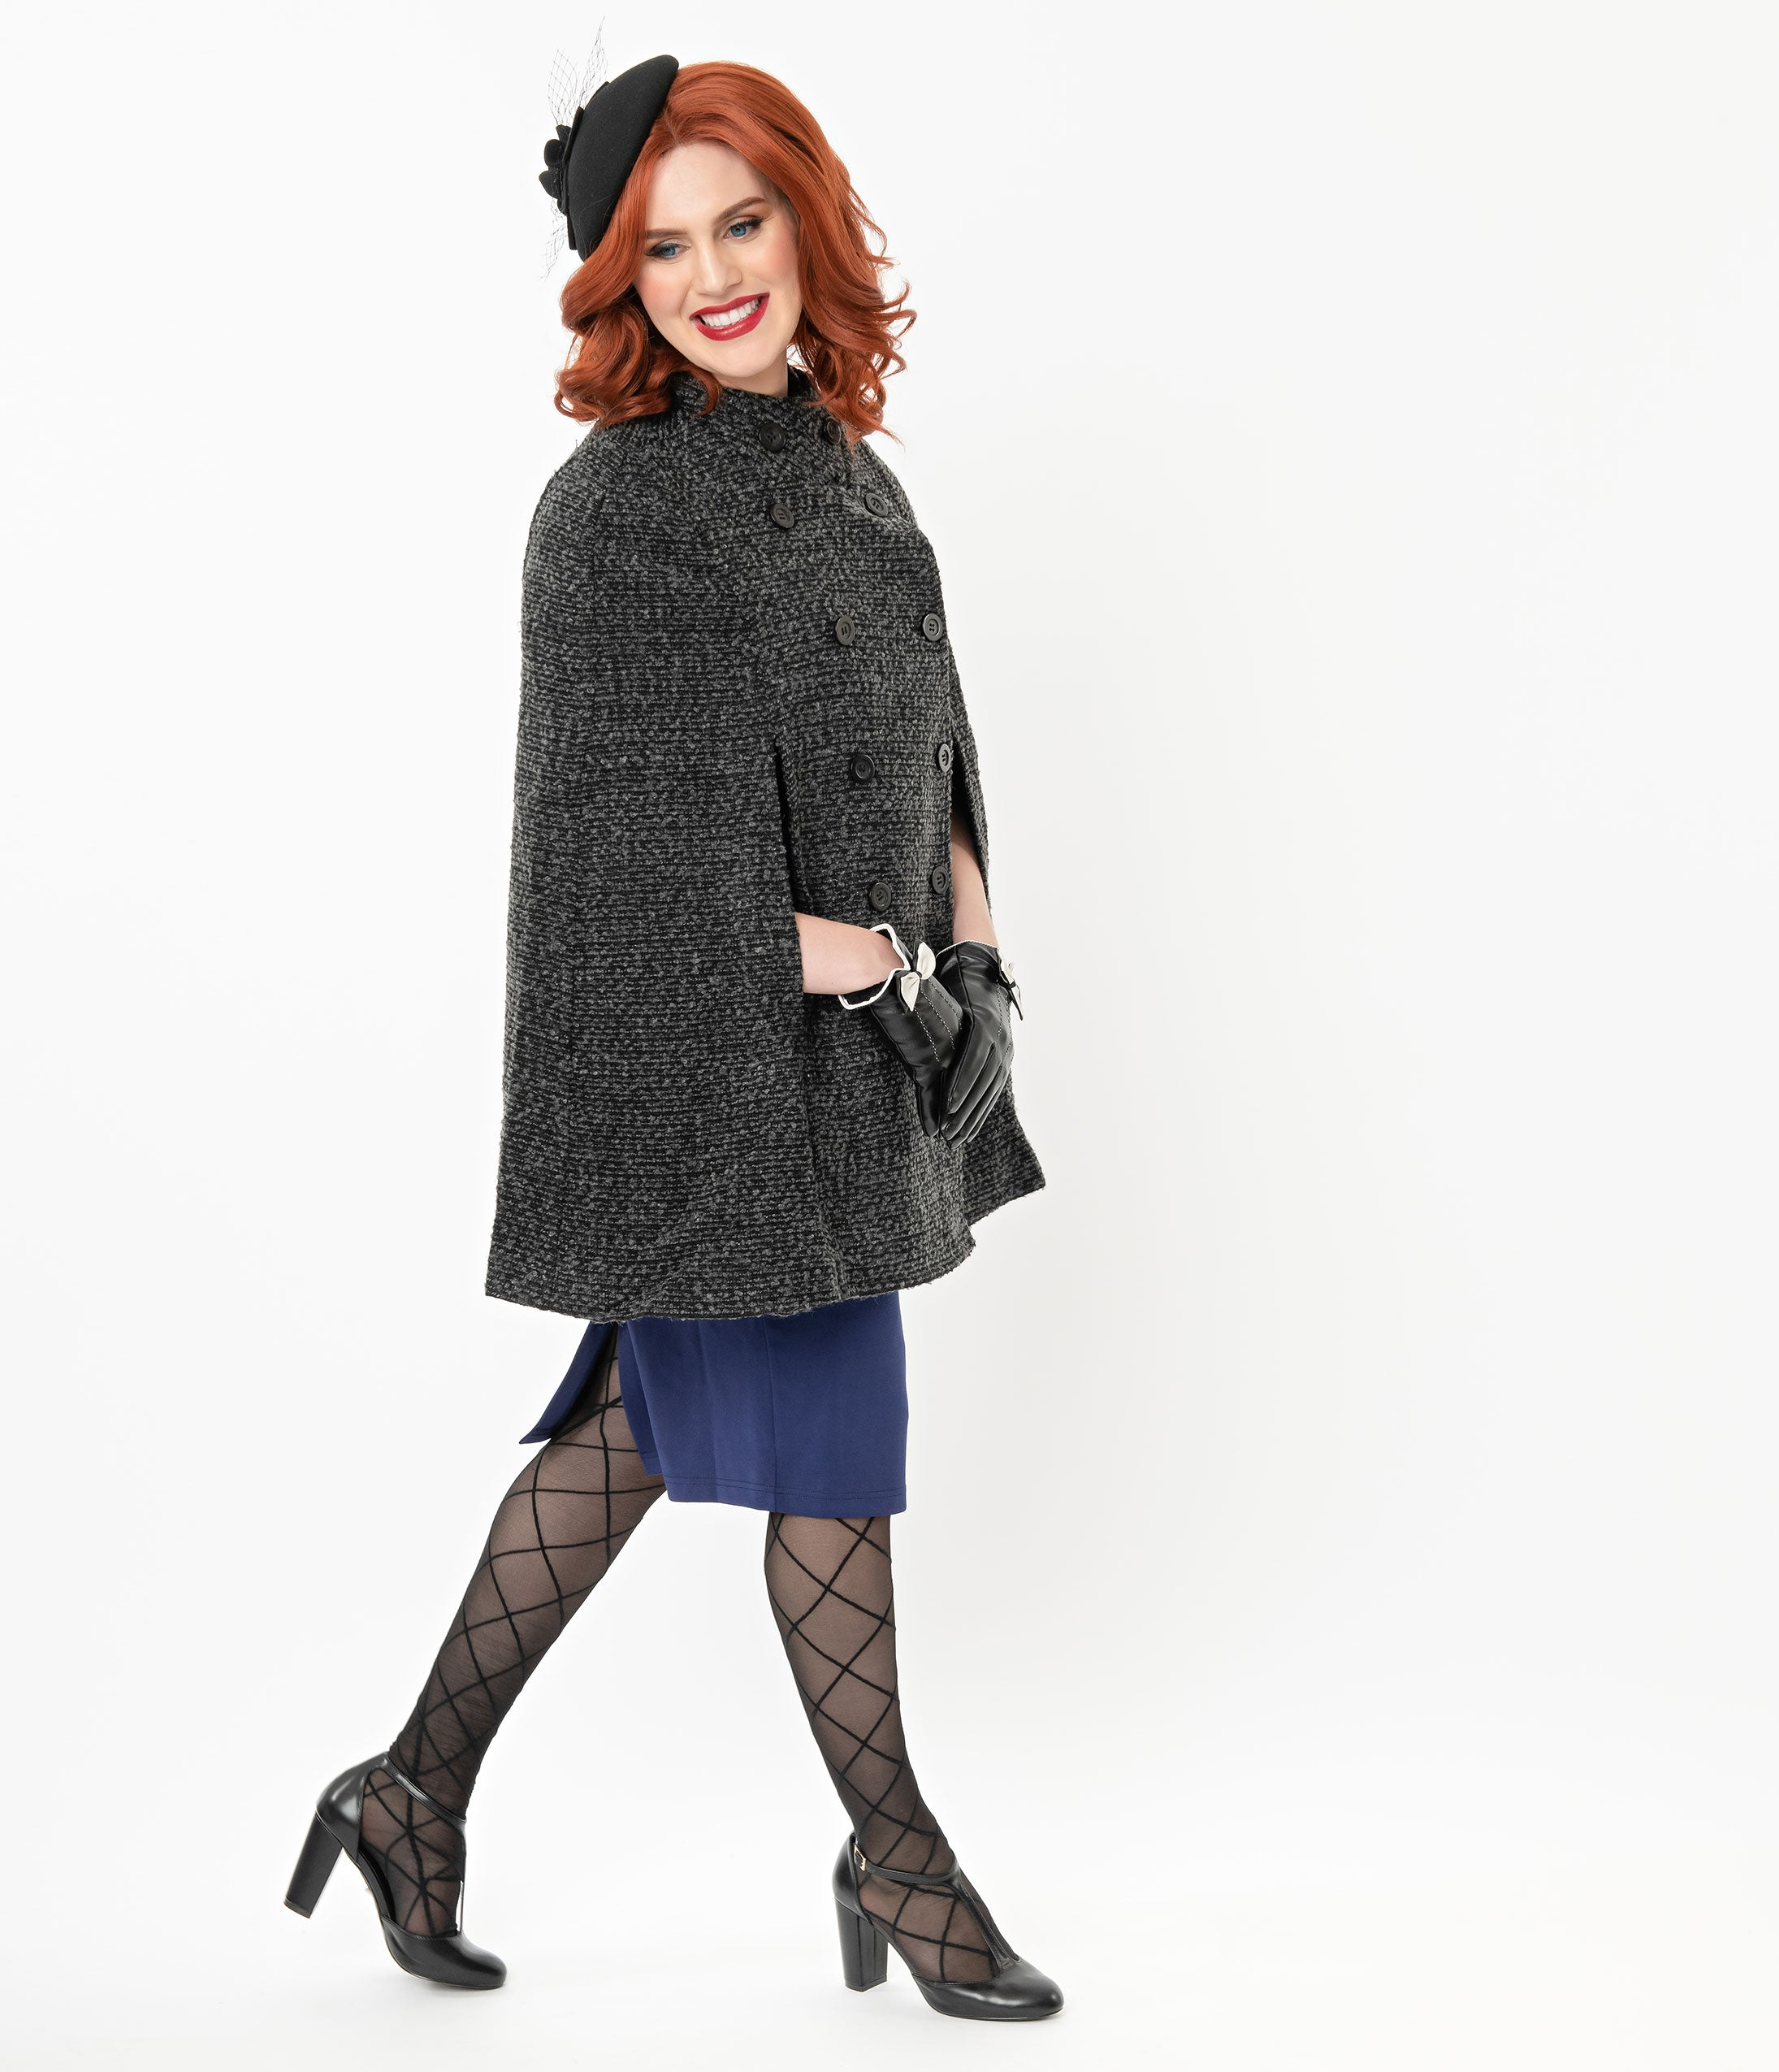 1940s Style Coats and Jackets for Sale Vintage Style Charcoal Woolen Cape Coat $88.00 AT vintagedancer.com